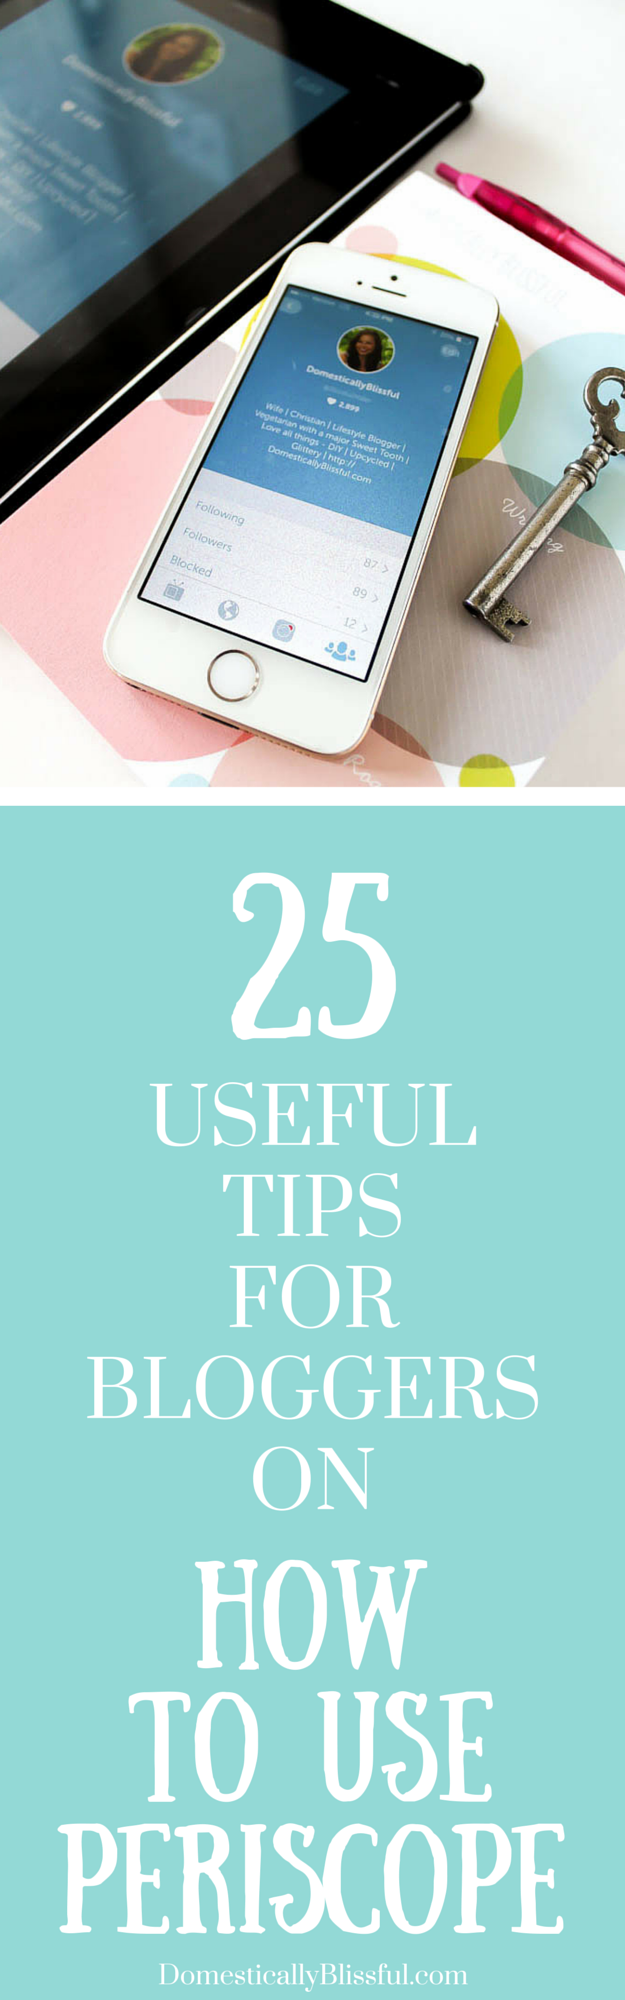 25 Useful Tips for Bloggers on How to Use Periscope